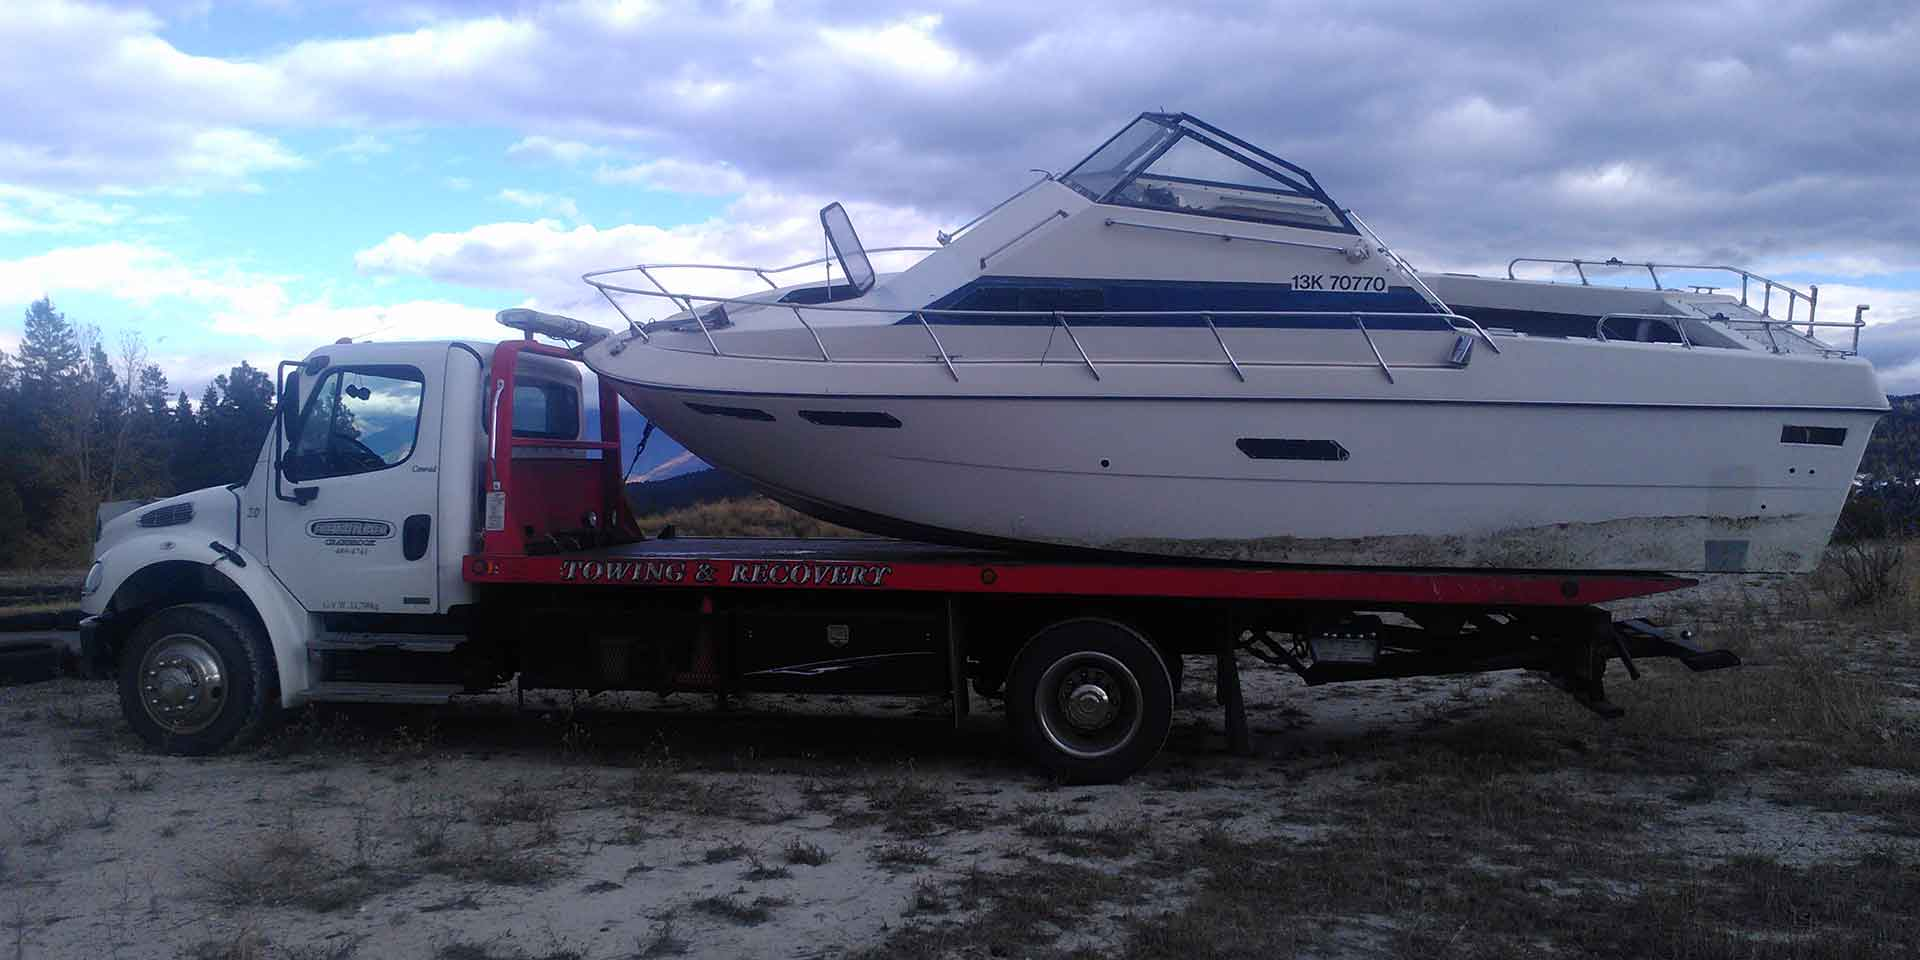 towing and recovery truck towing boat